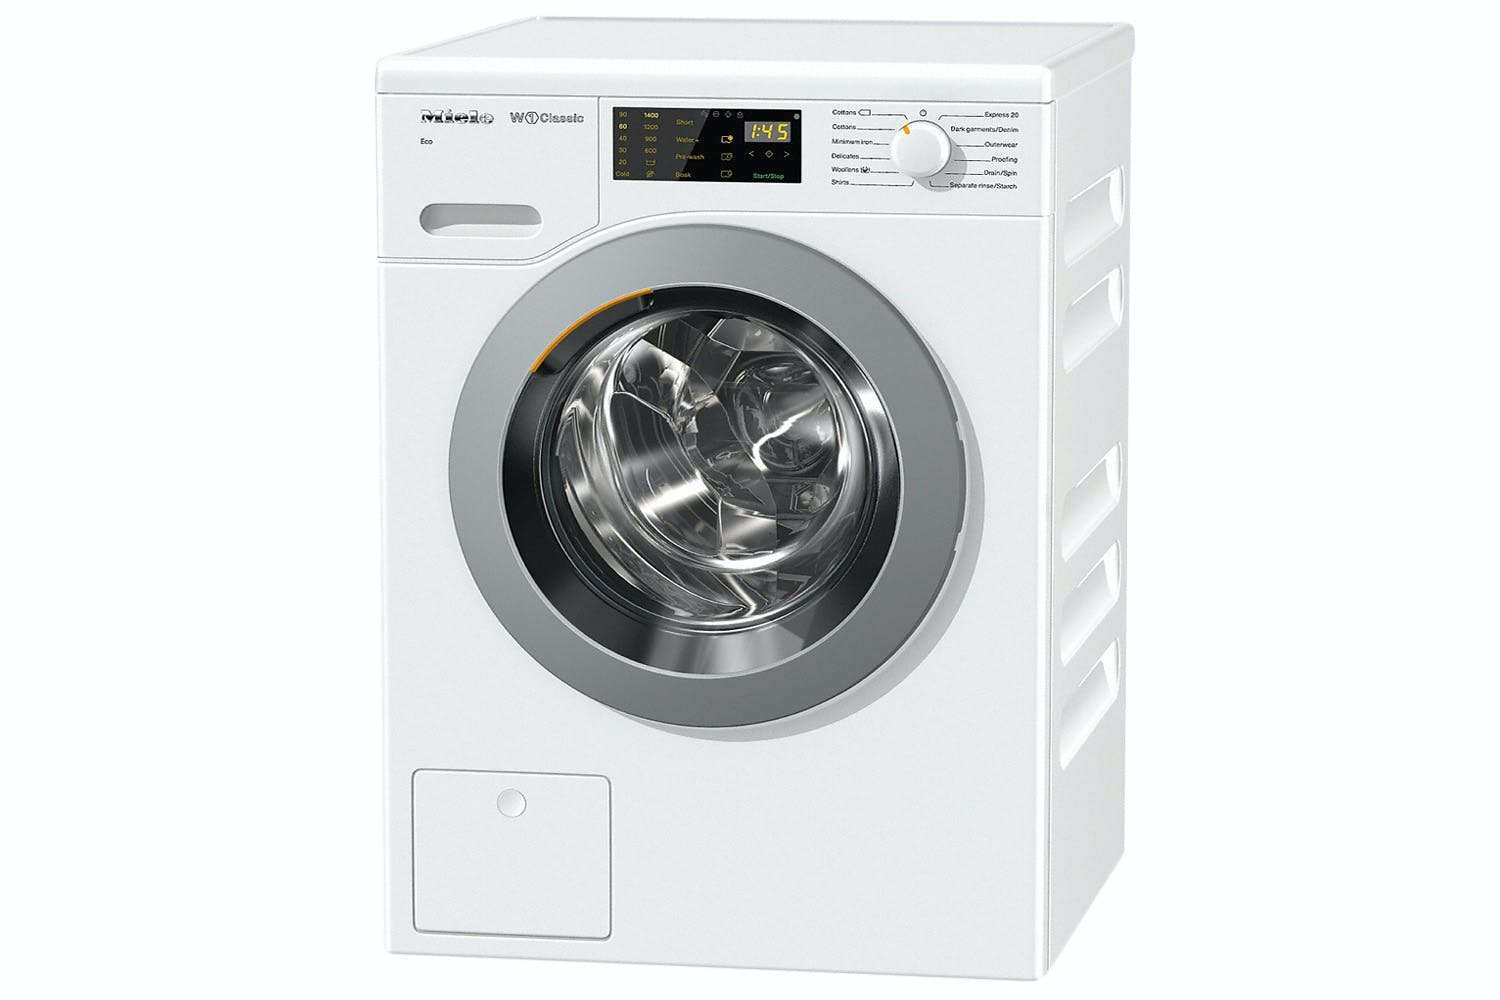 Onwijs Miele WDB020 Eco W1 Classic front-loading washing machine for 1-7 AO-59